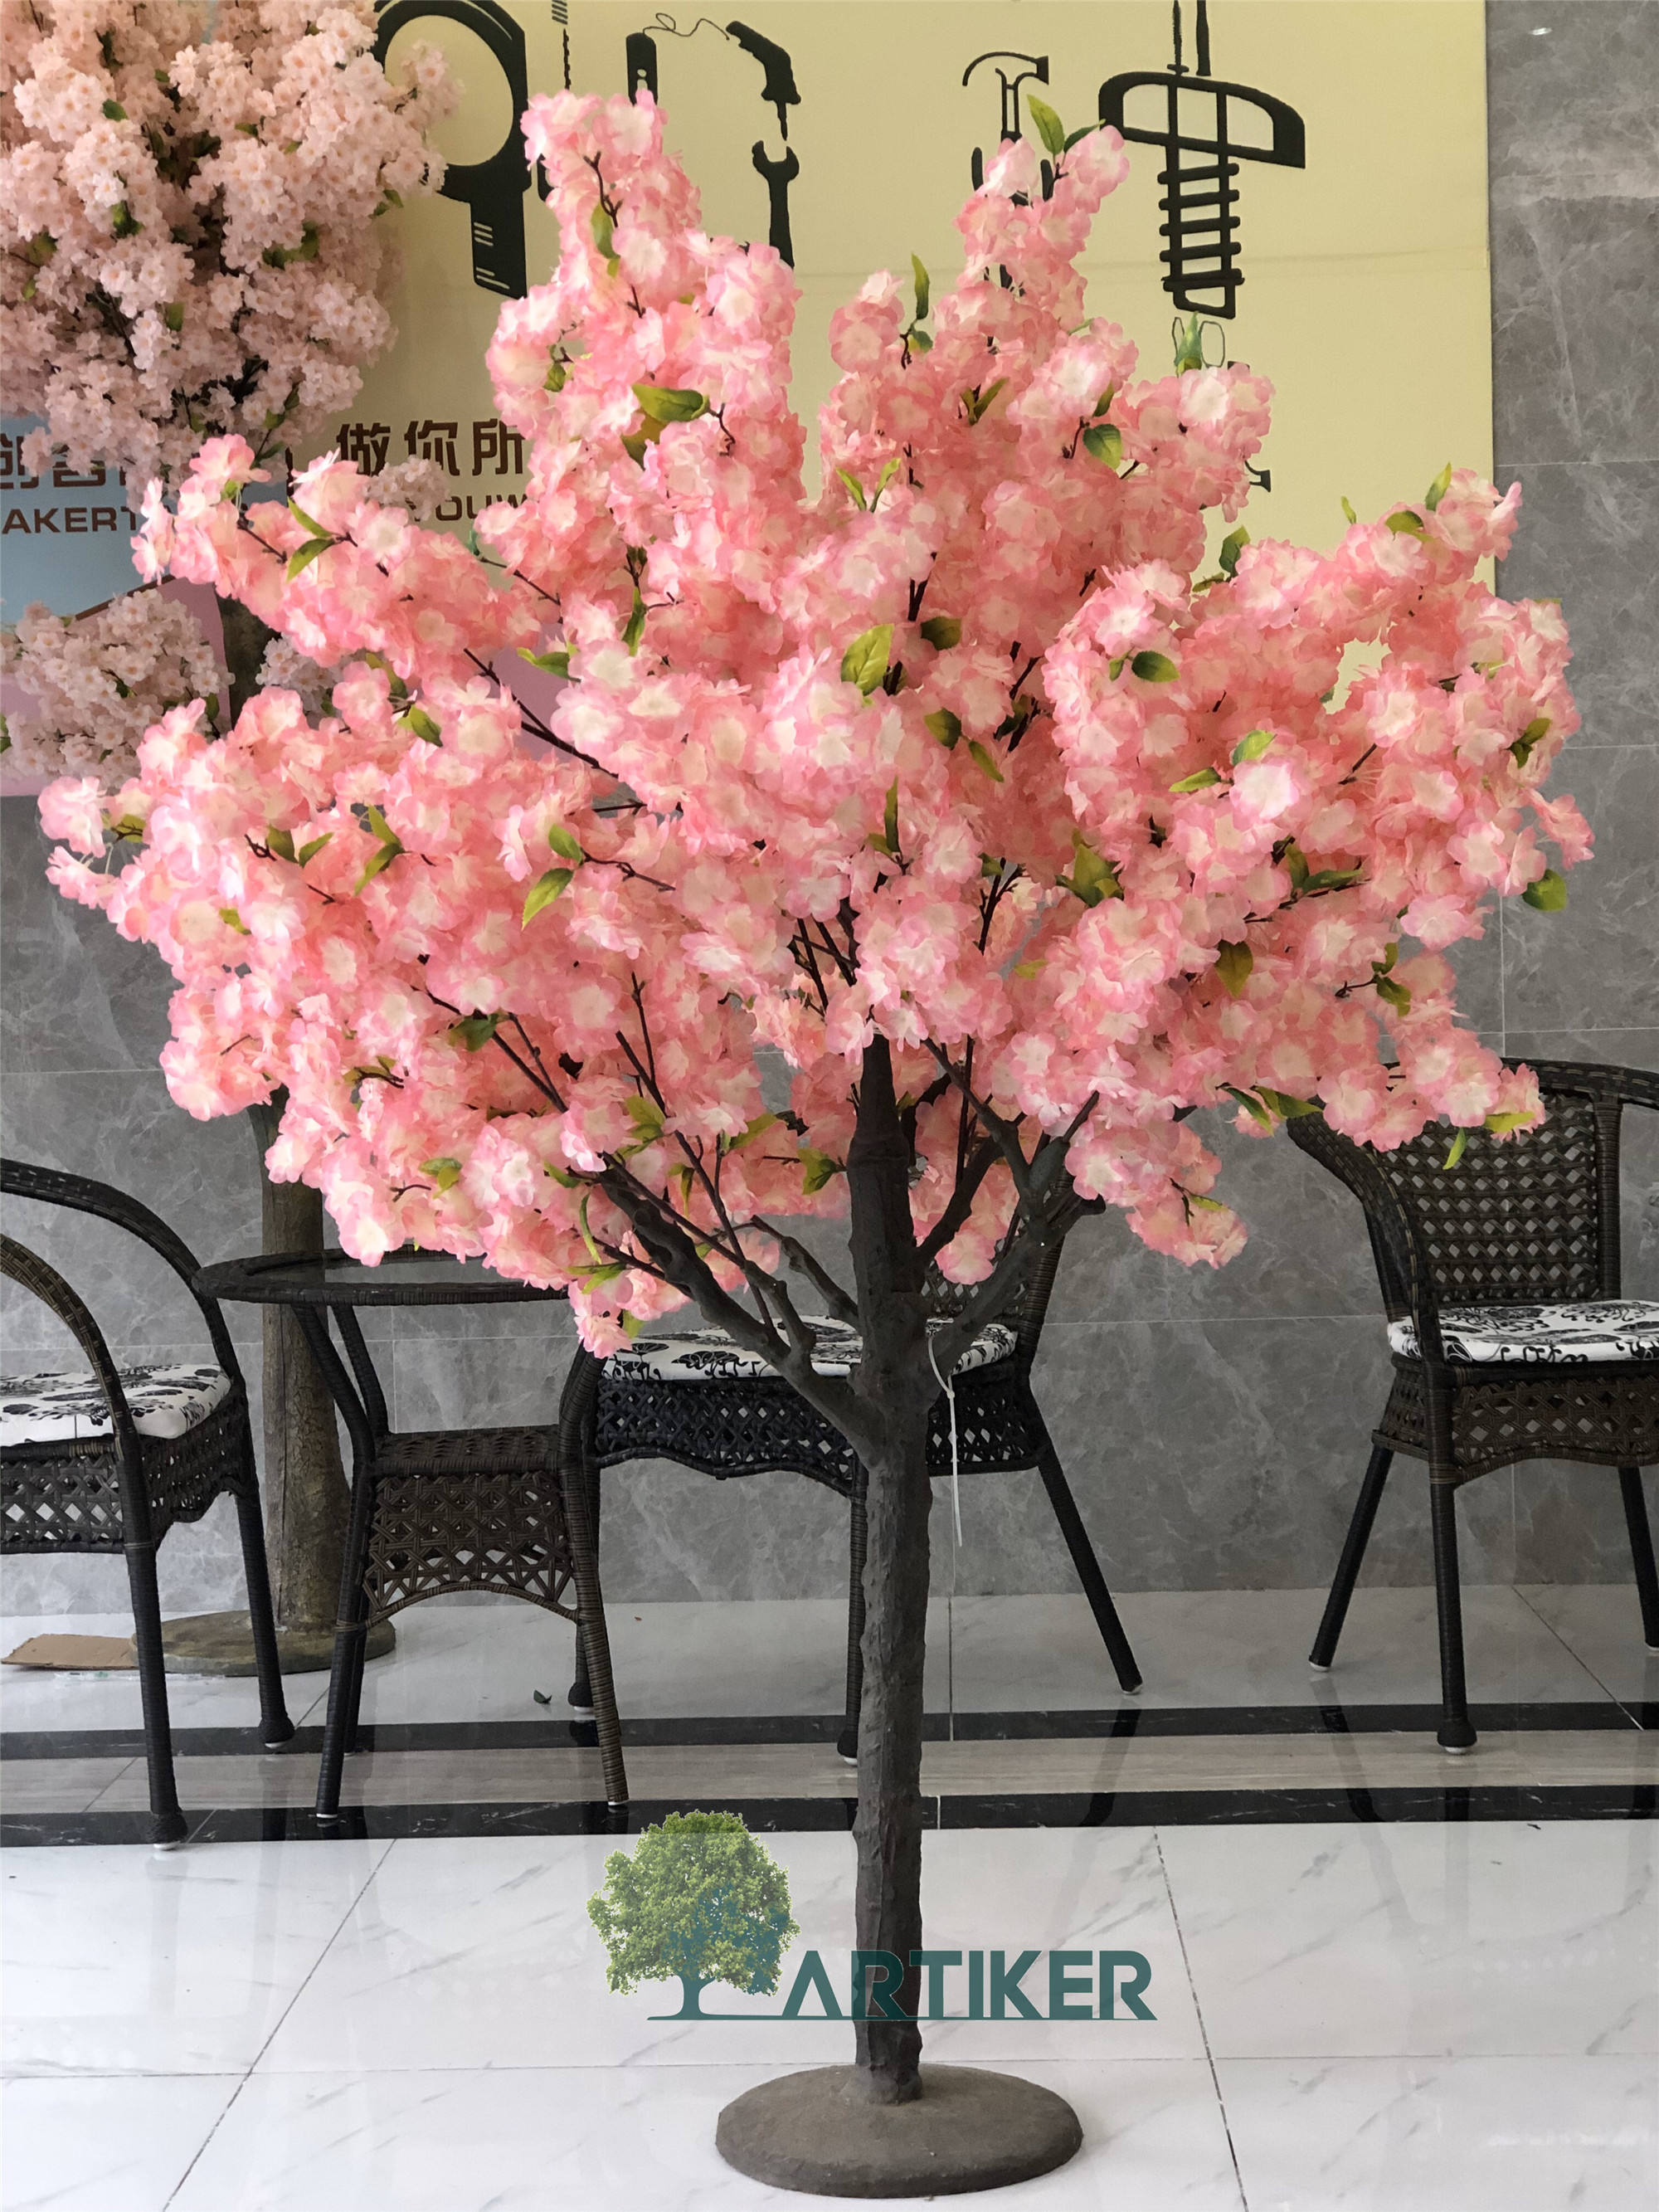 wholesale wedding table centerpieces indoor decorative mini sakura flower artificial cherry blossom tree